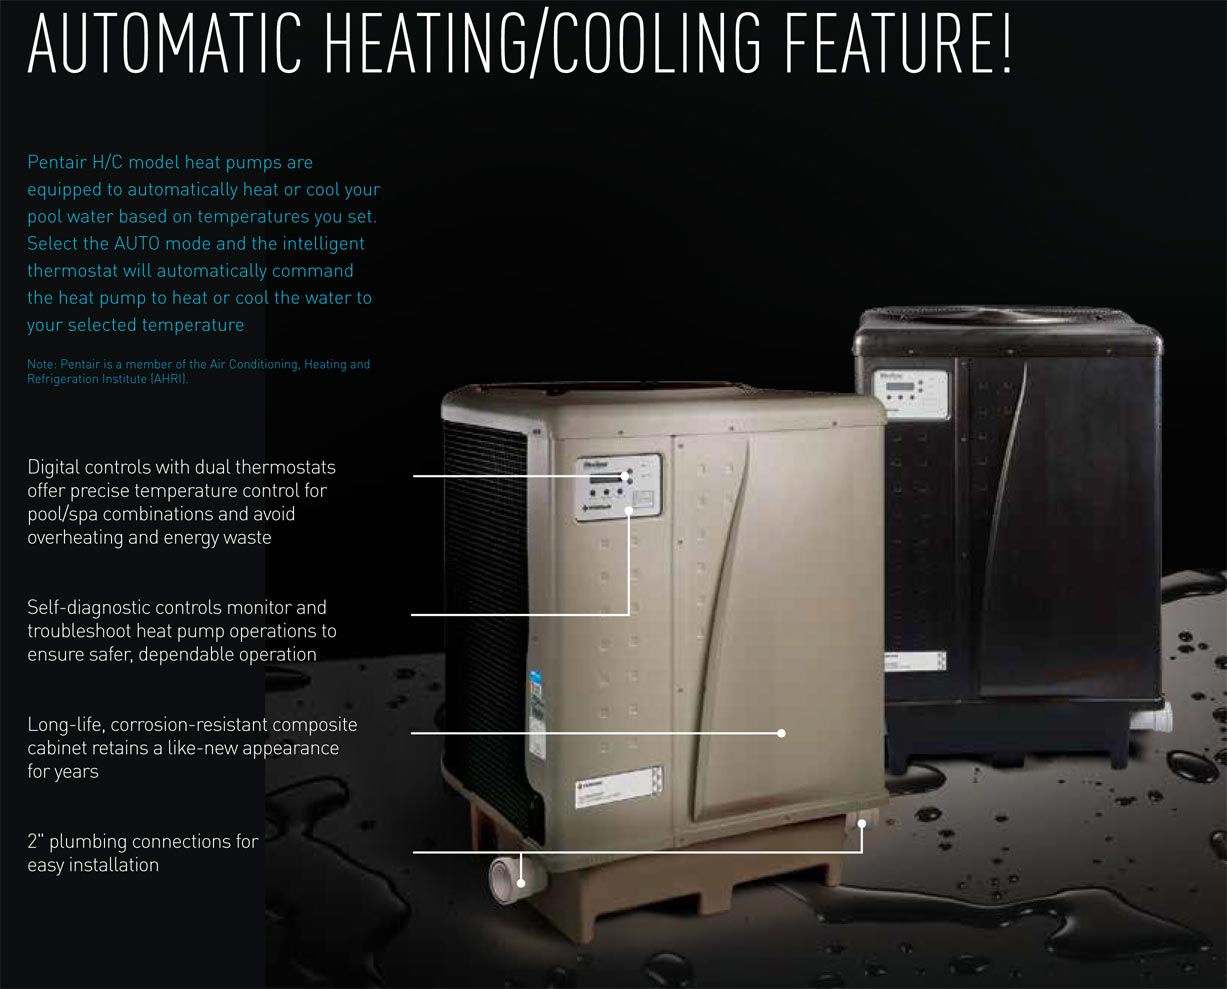 Pentair Ultratemp Heat Pump 140k Btu 460928 Wiring Why Should You Choose An Ultra Temp Thats Easy It Offers The Longest List Of Standard Features Available